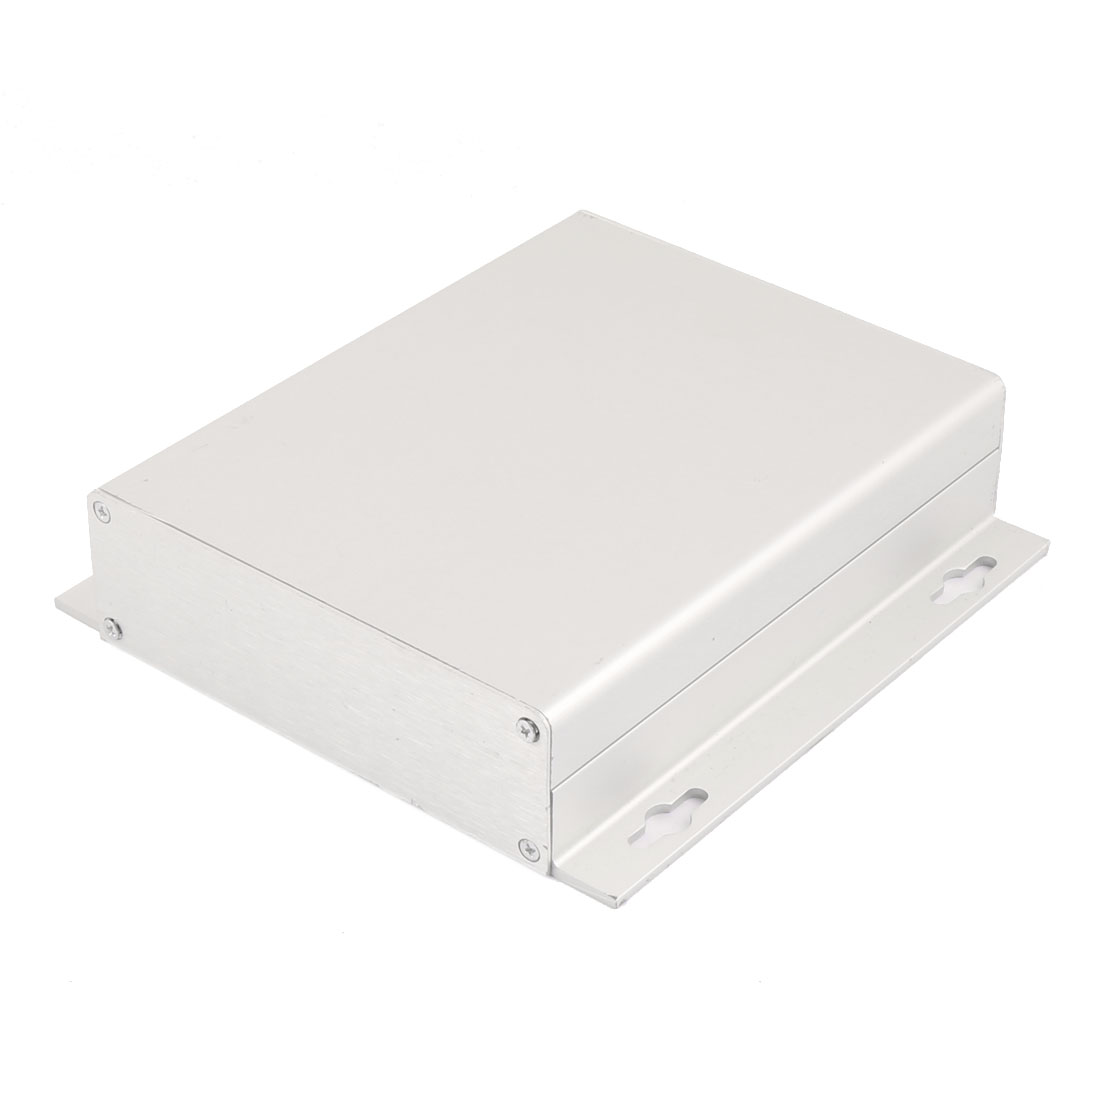 38x150x155mm Multi-purpose Electronic Extruded Aluminum Enclosure Case Silver Tone